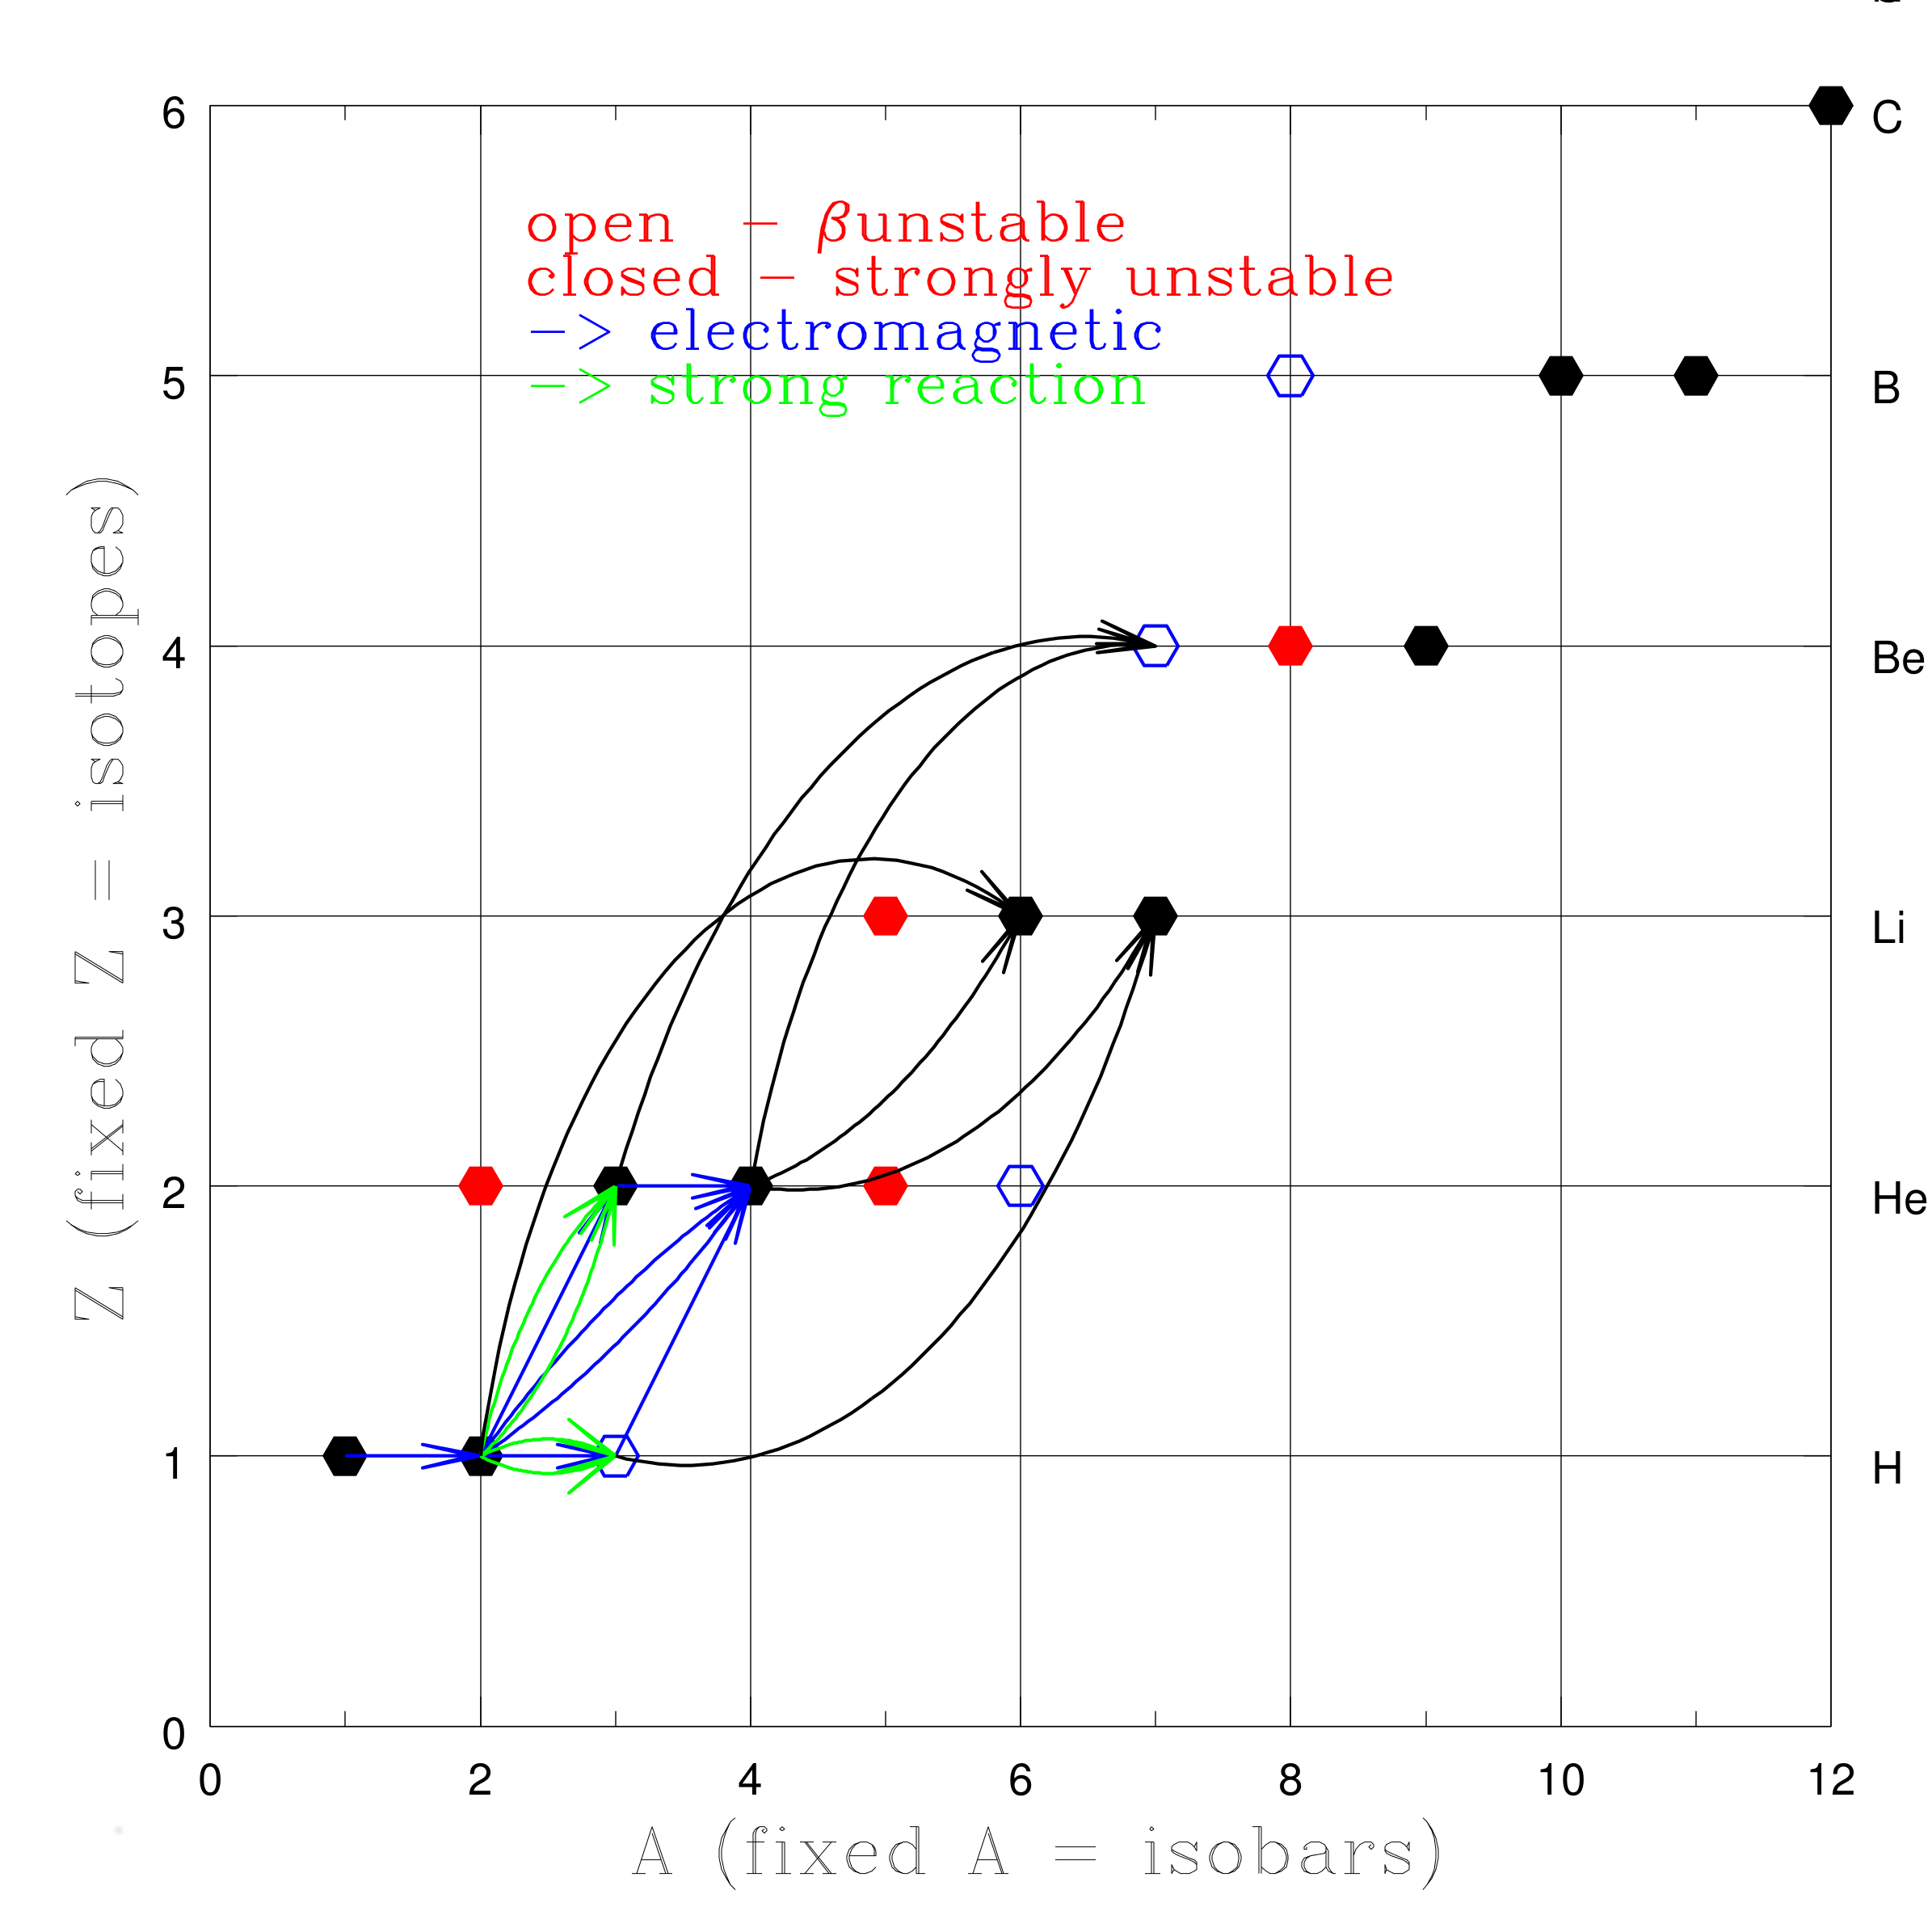 redshift big bang nucleosynthesis Nucleosynthesis in plasma-redshift assumed only to be created in the big-bang plasma-redshift cosmology explains therefore the primordial like nucleosynthesis.